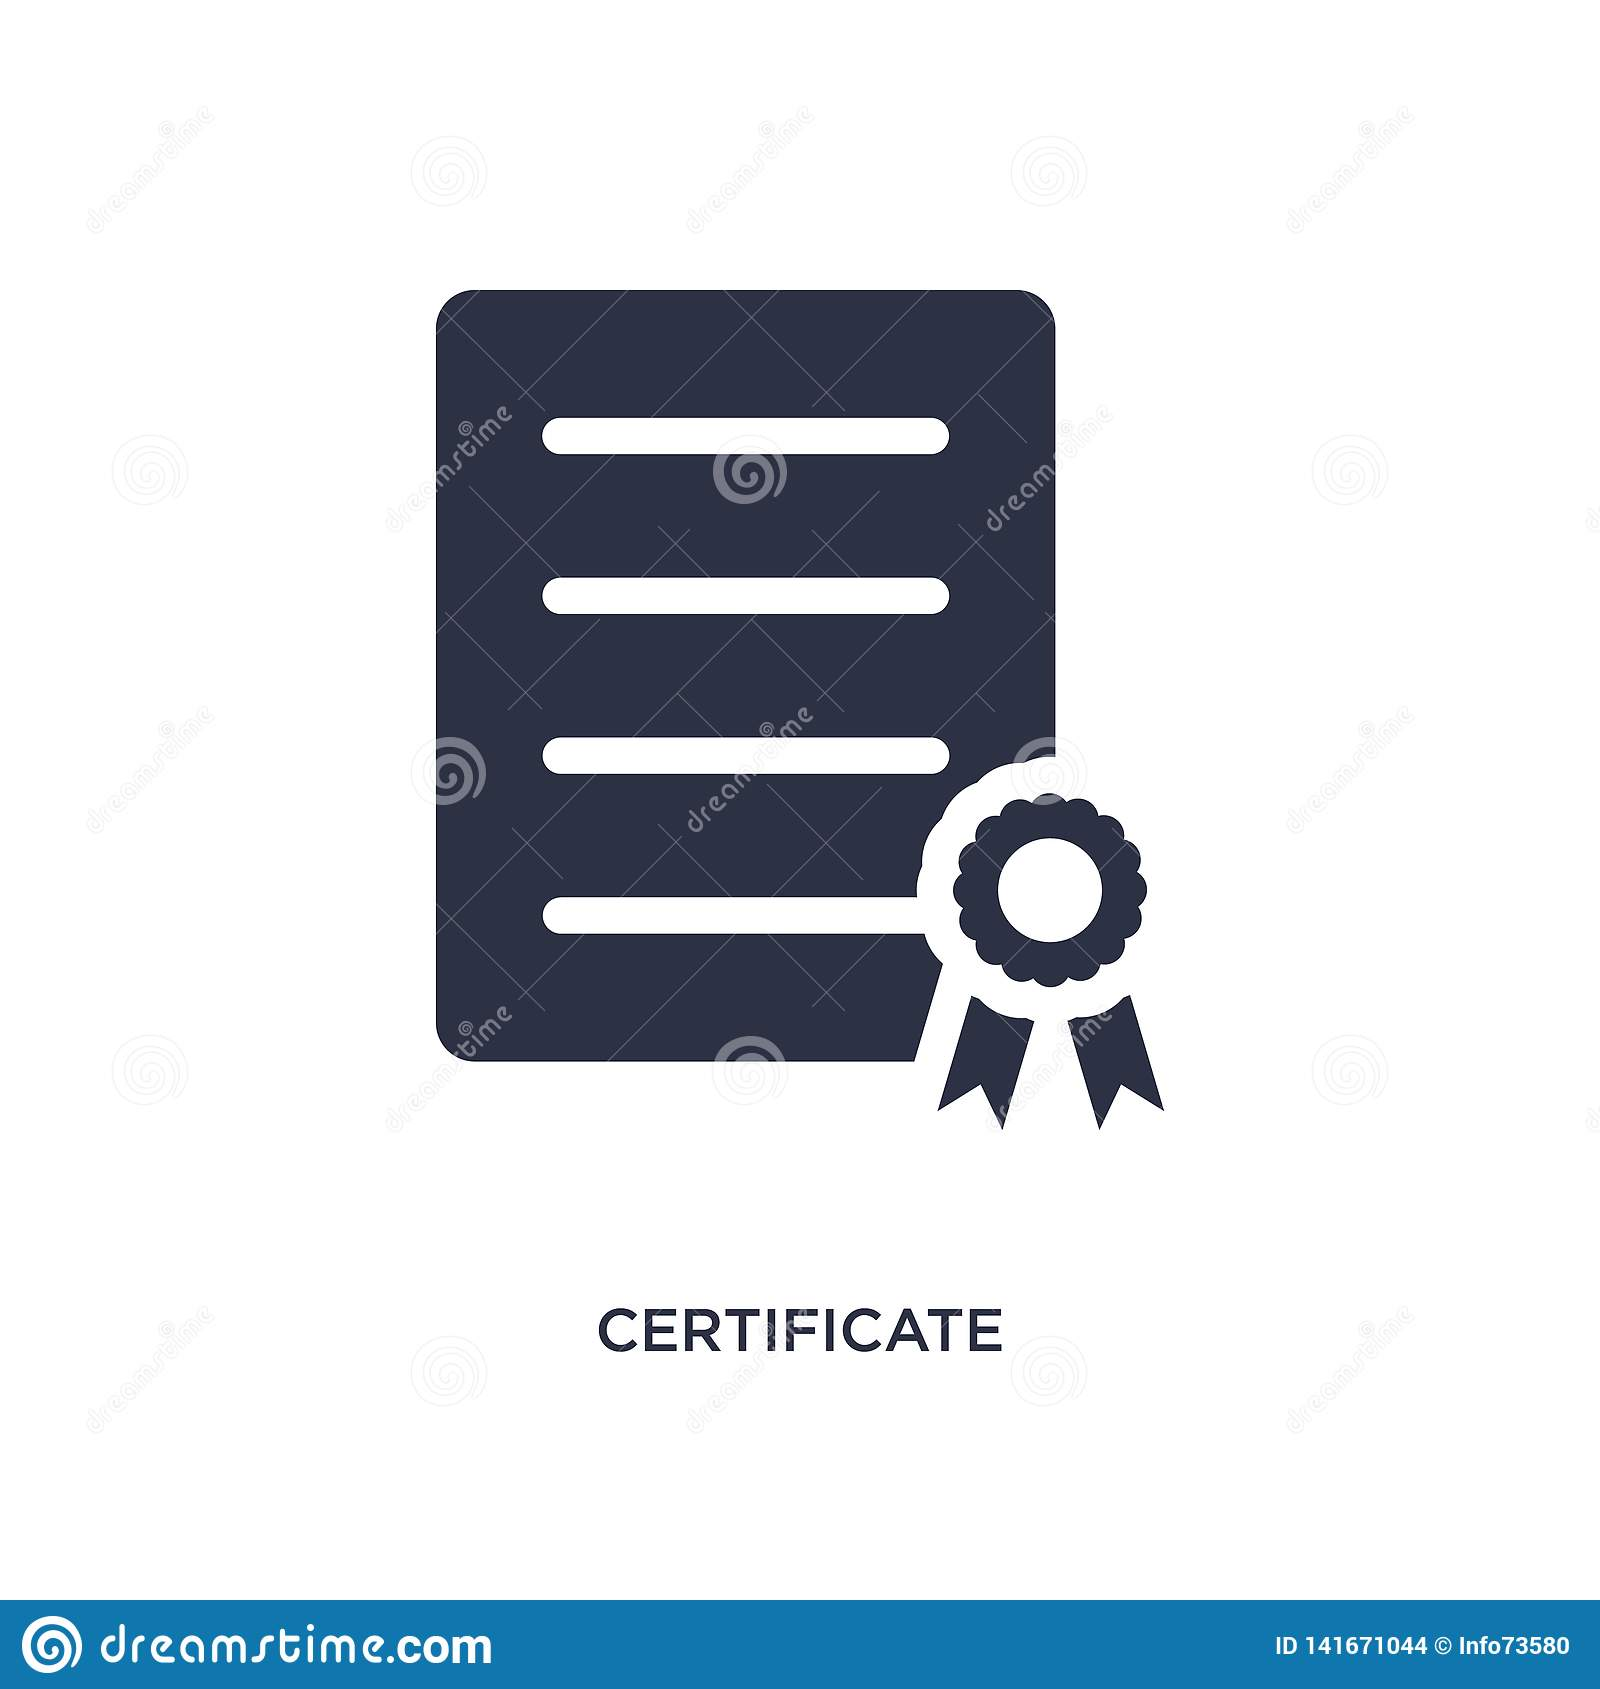 certificate icon on white background. Simple element illustration from delivery and logistic concept